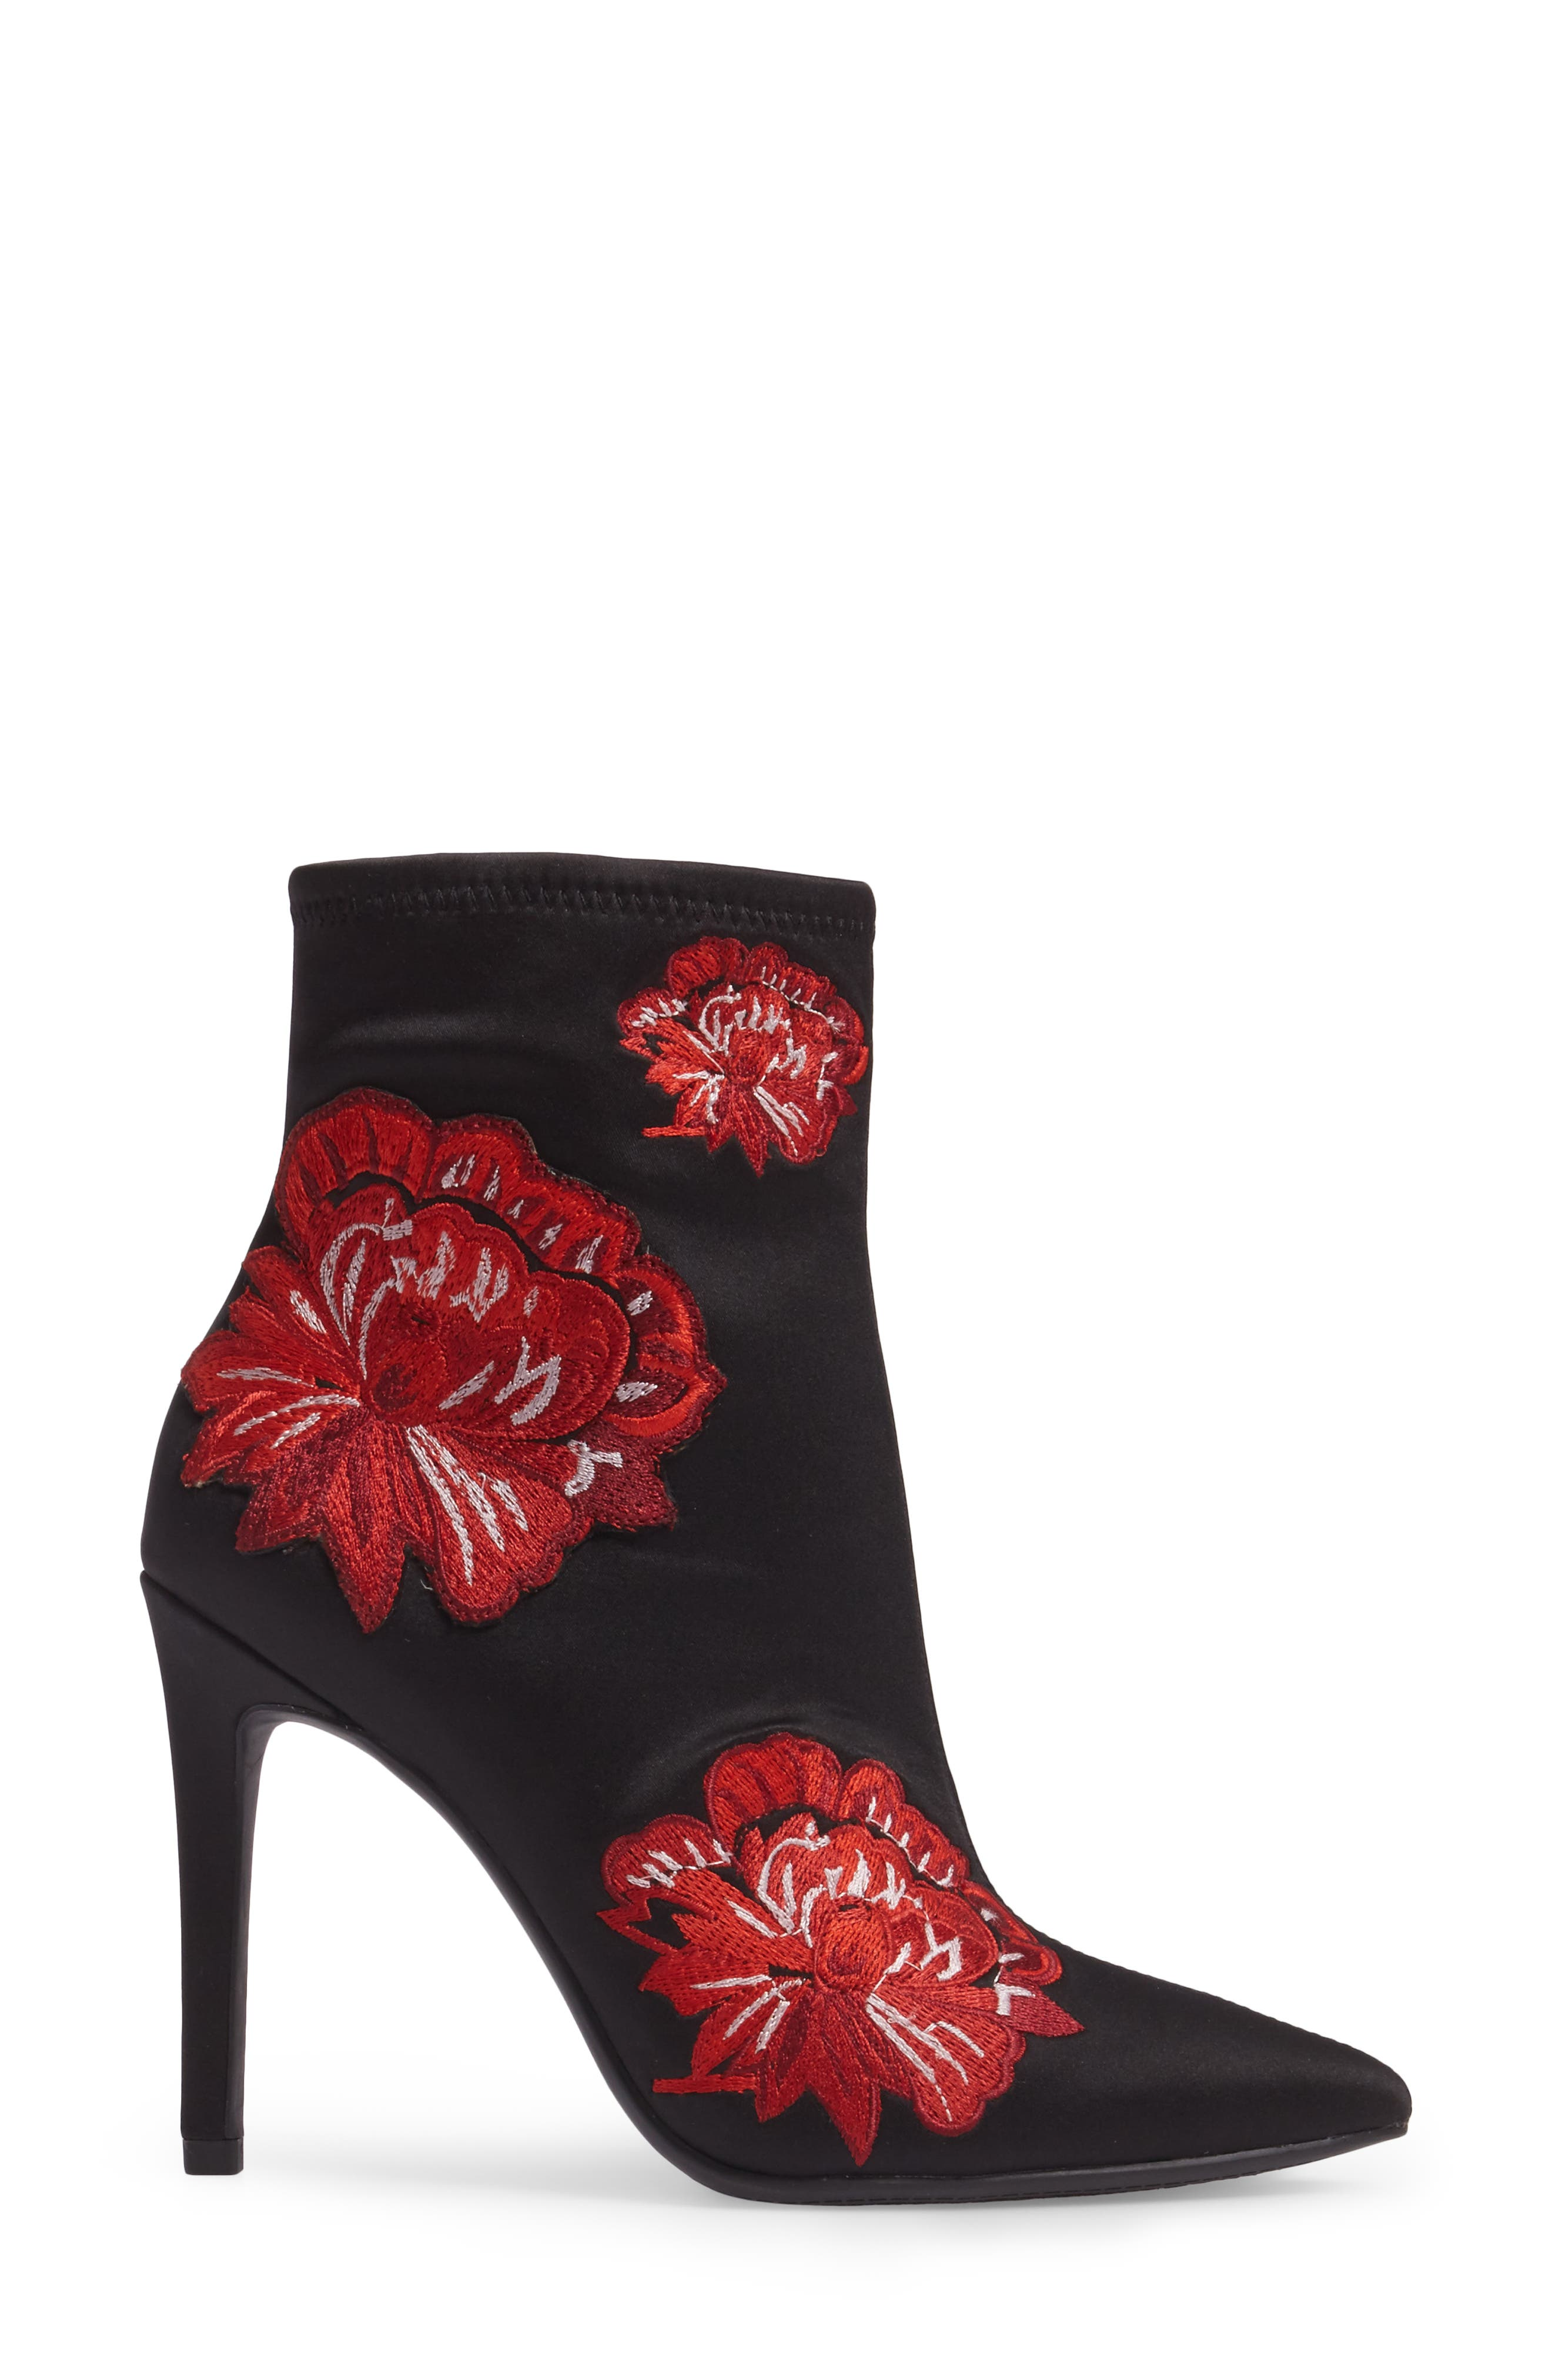 Pelanna Appliqué Stretch Bootie,                             Alternate thumbnail 3, color,                             001